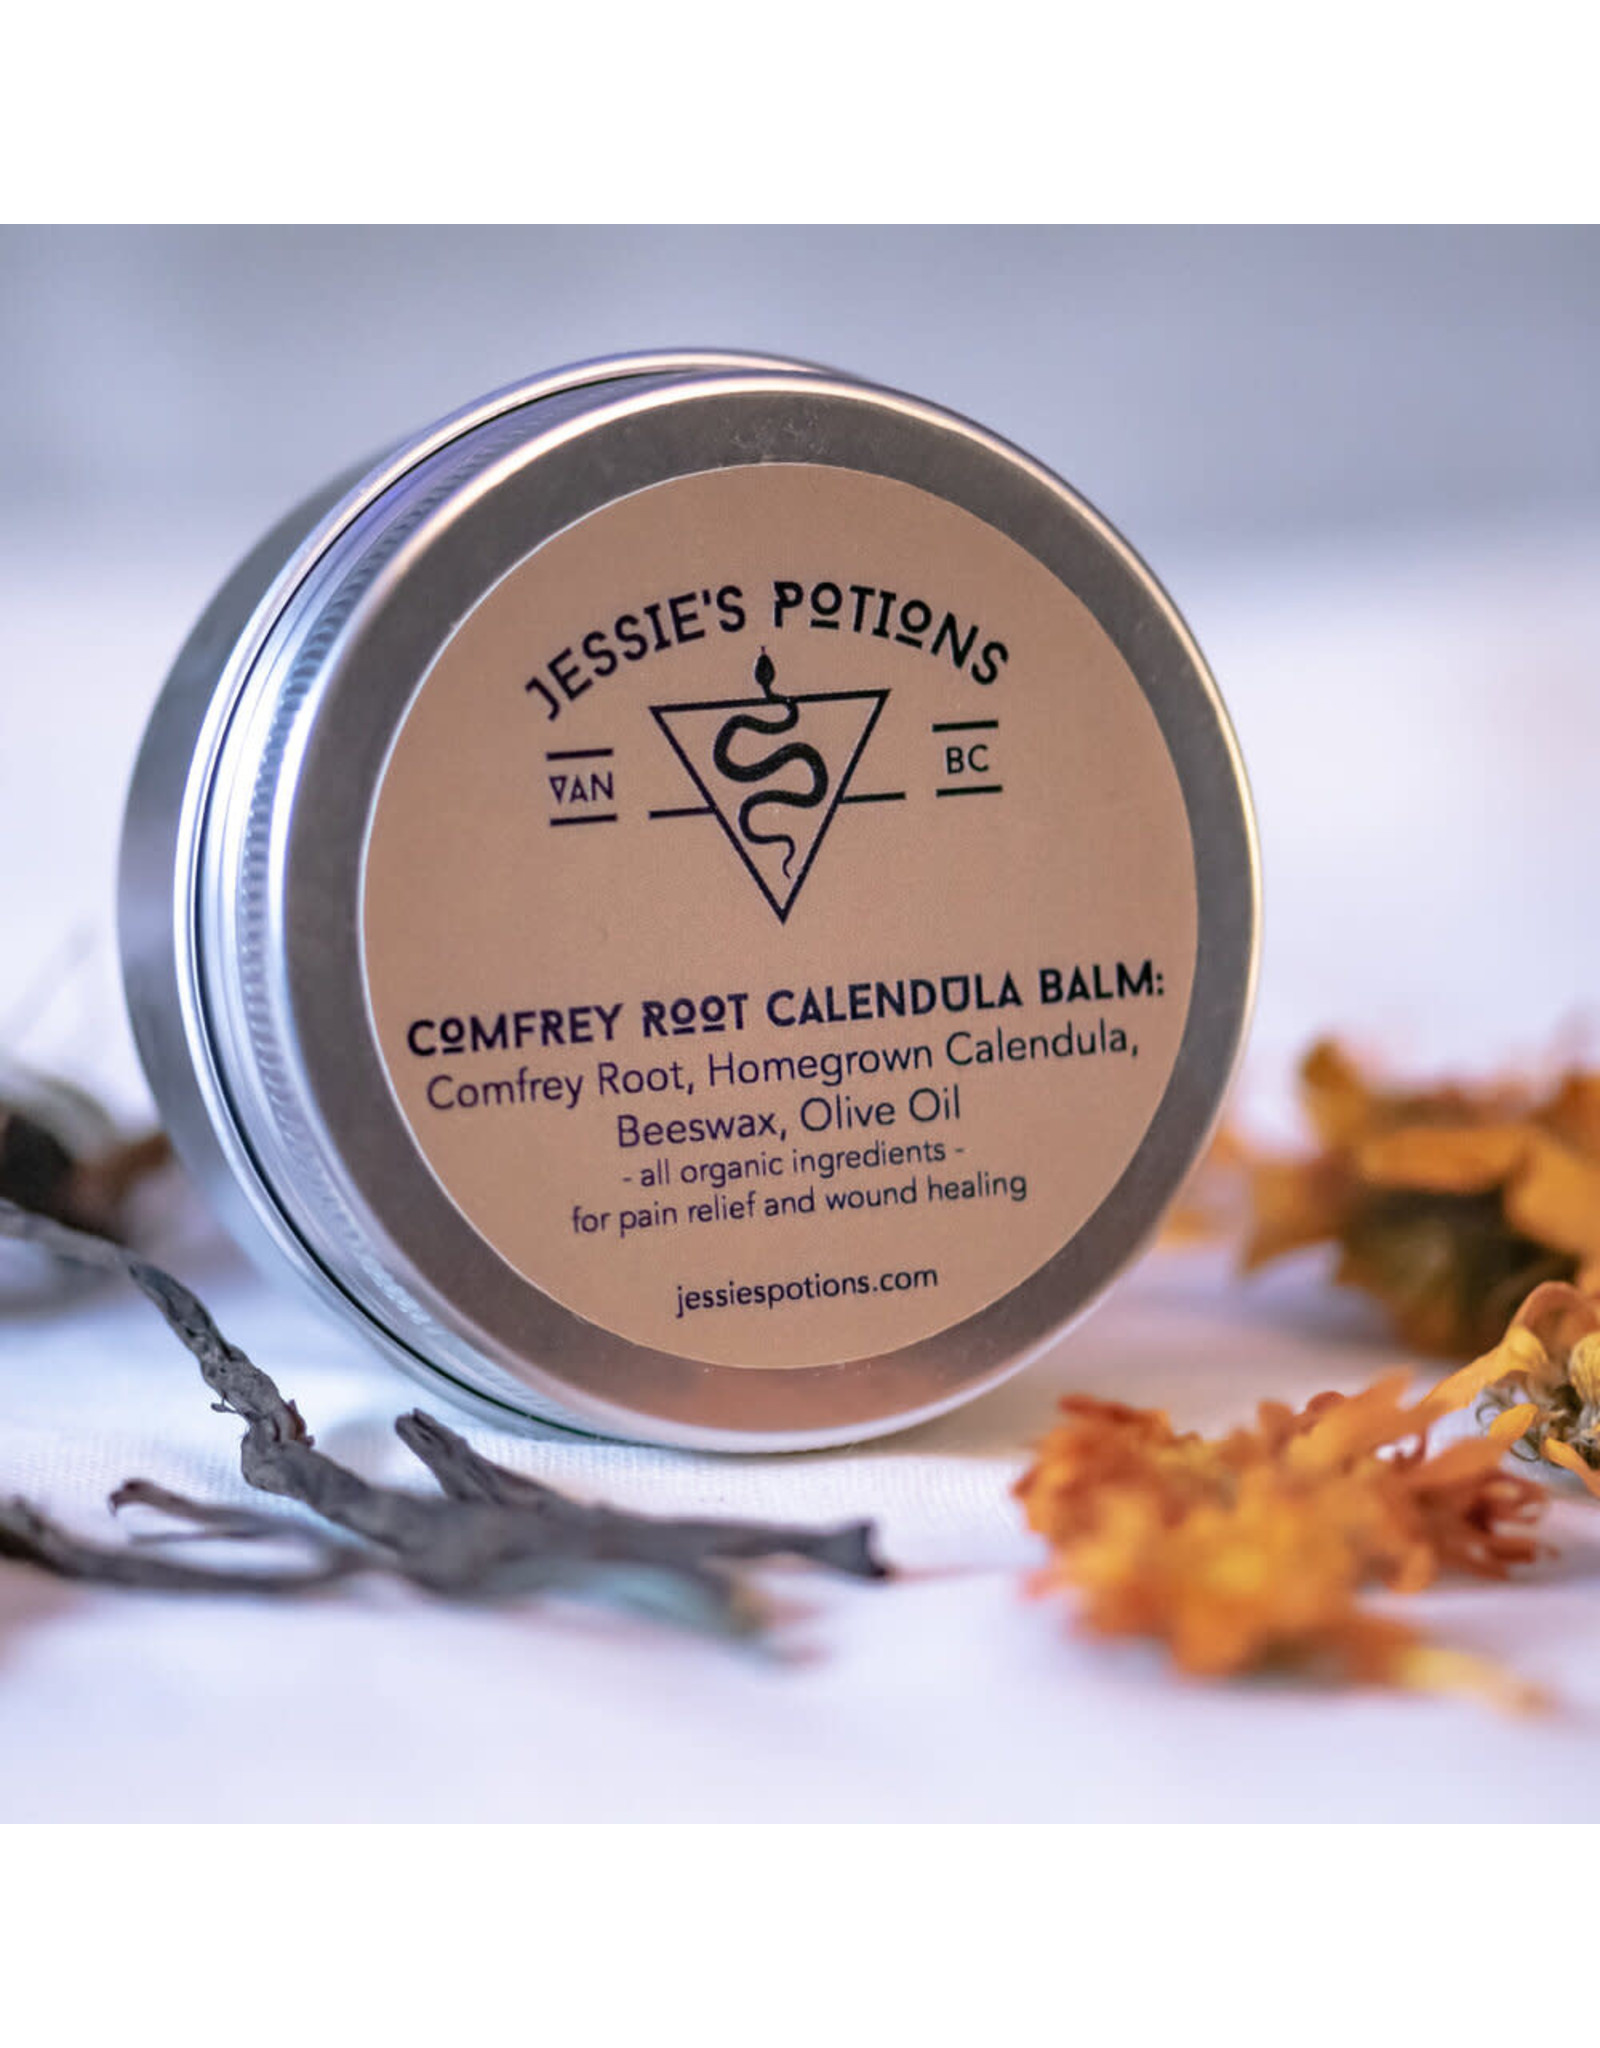 Jessie's Potions Comfrey Root Calendula Balm, Jessie's Potions